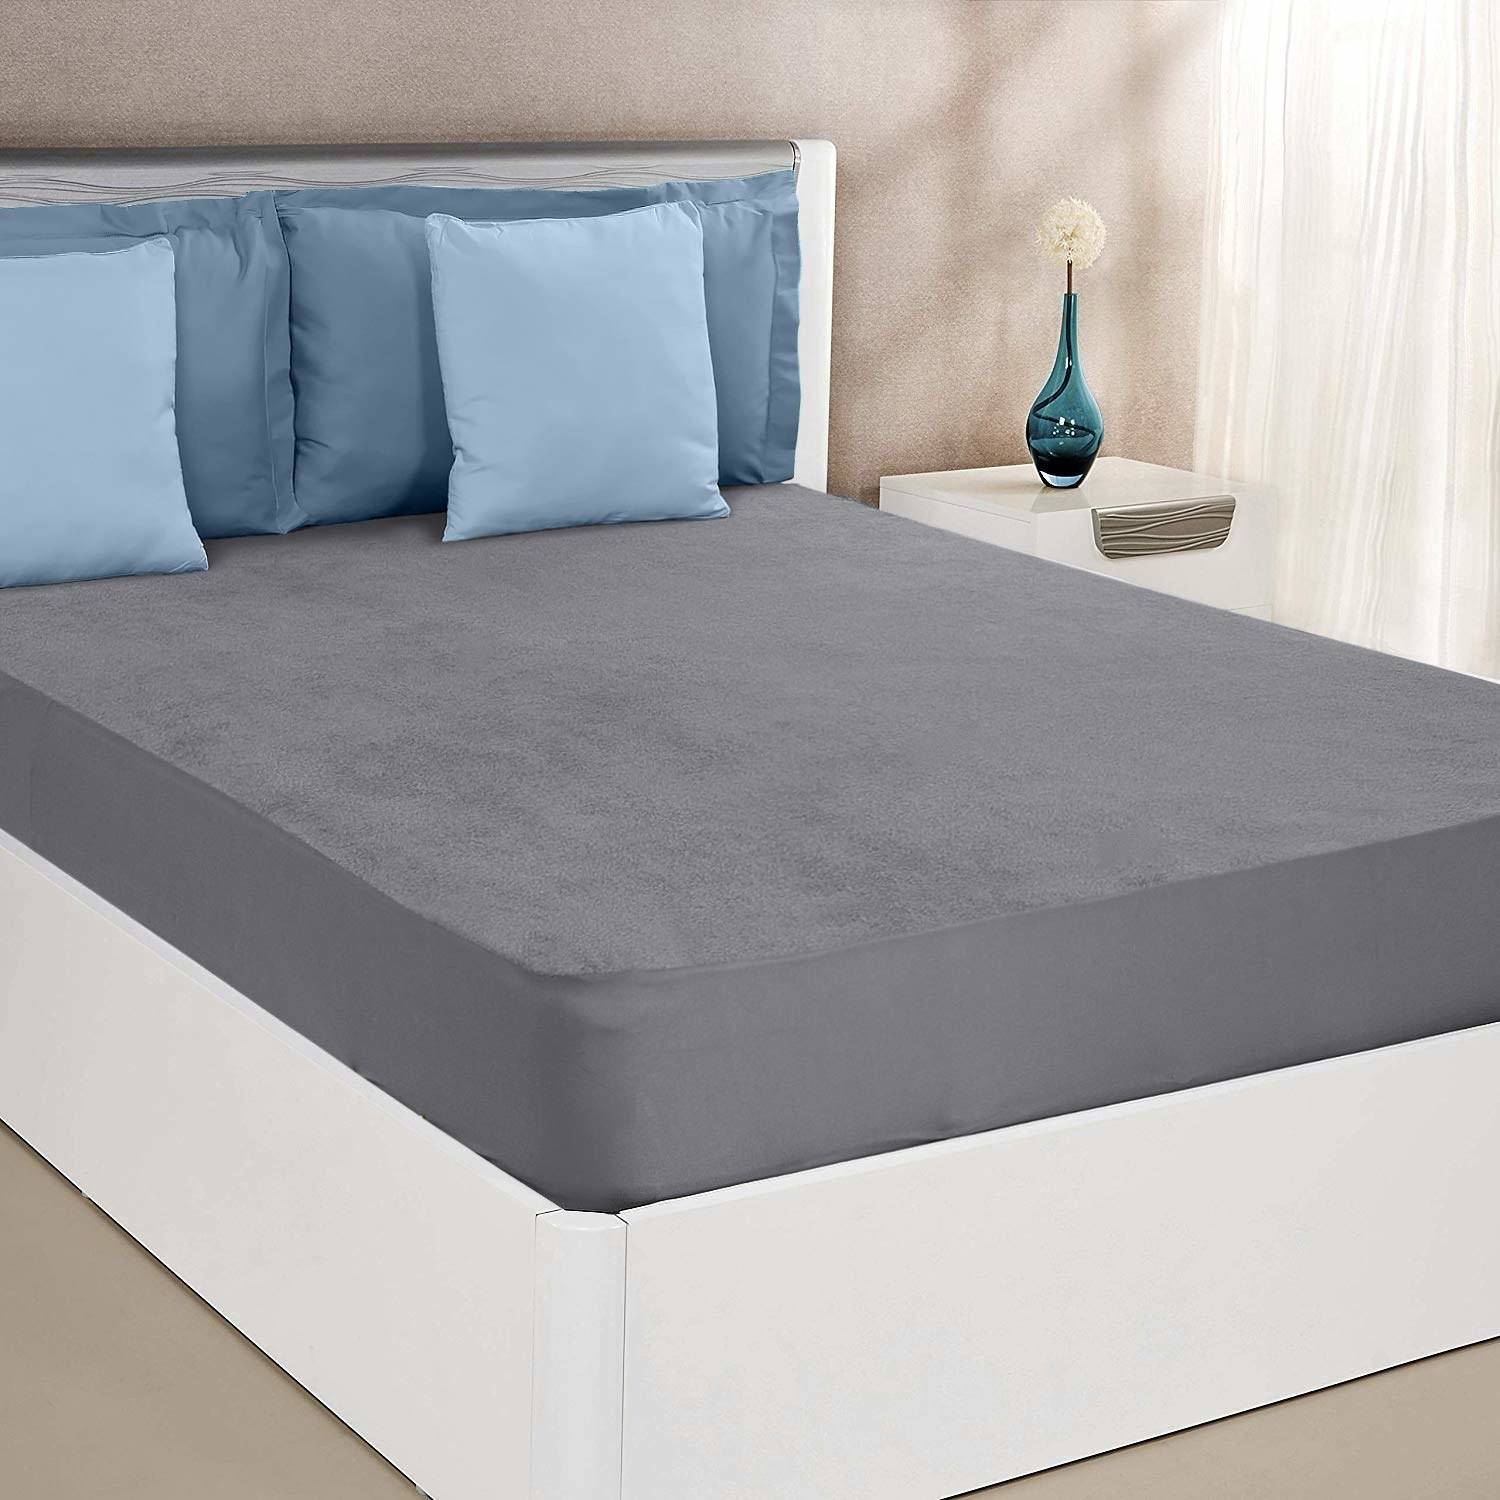 A waterproof mattress protector on a bed